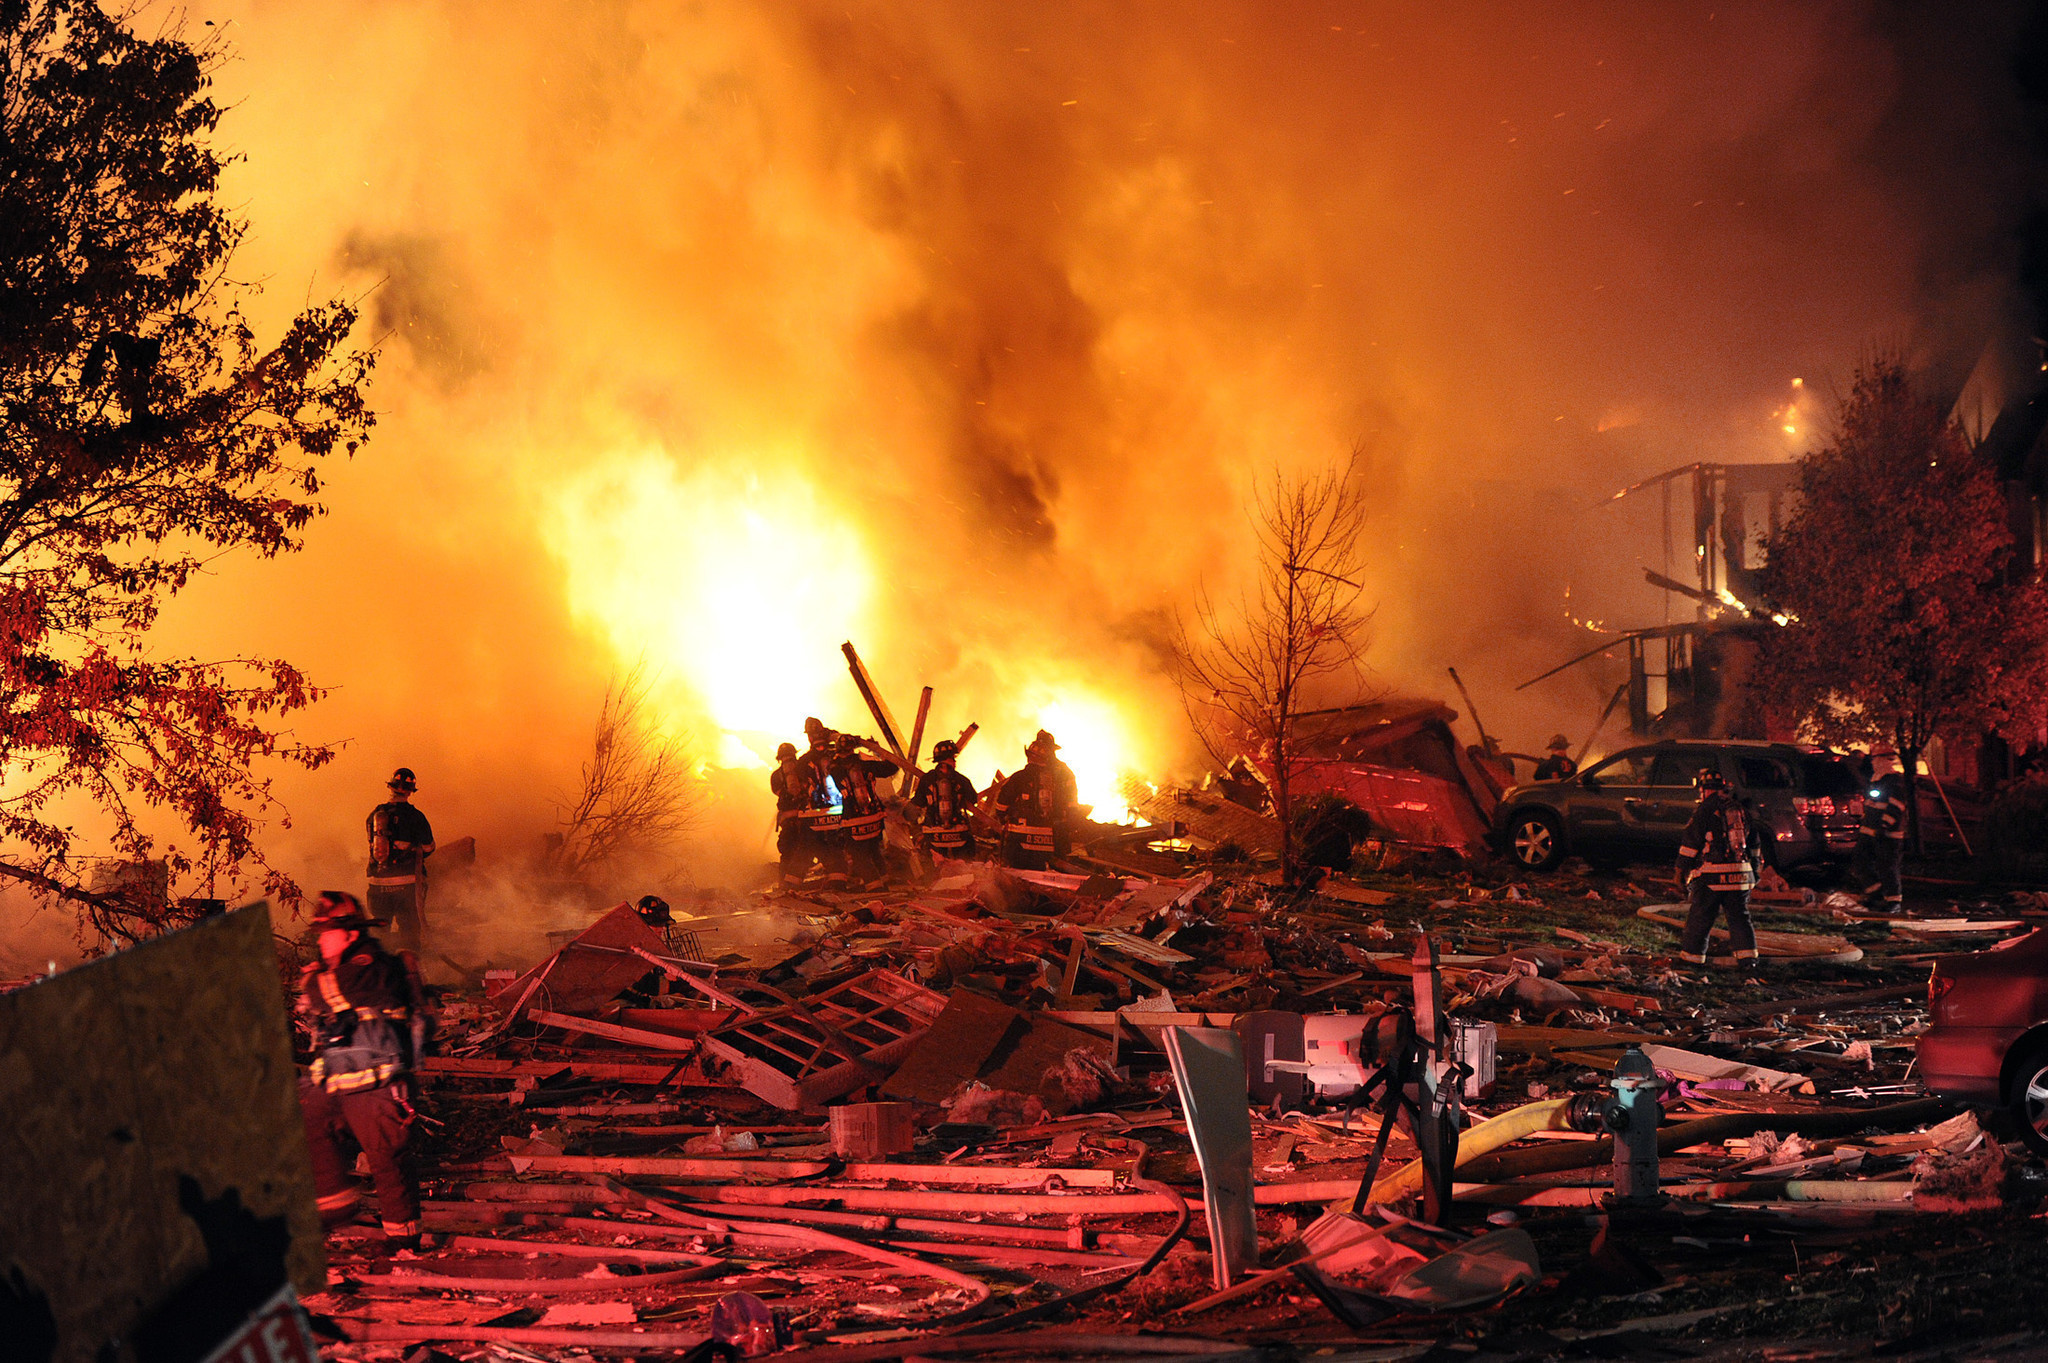 Falling Money Hd Wallpaper Defendant In Indiana House Explosion Gets Maximum 50 Years